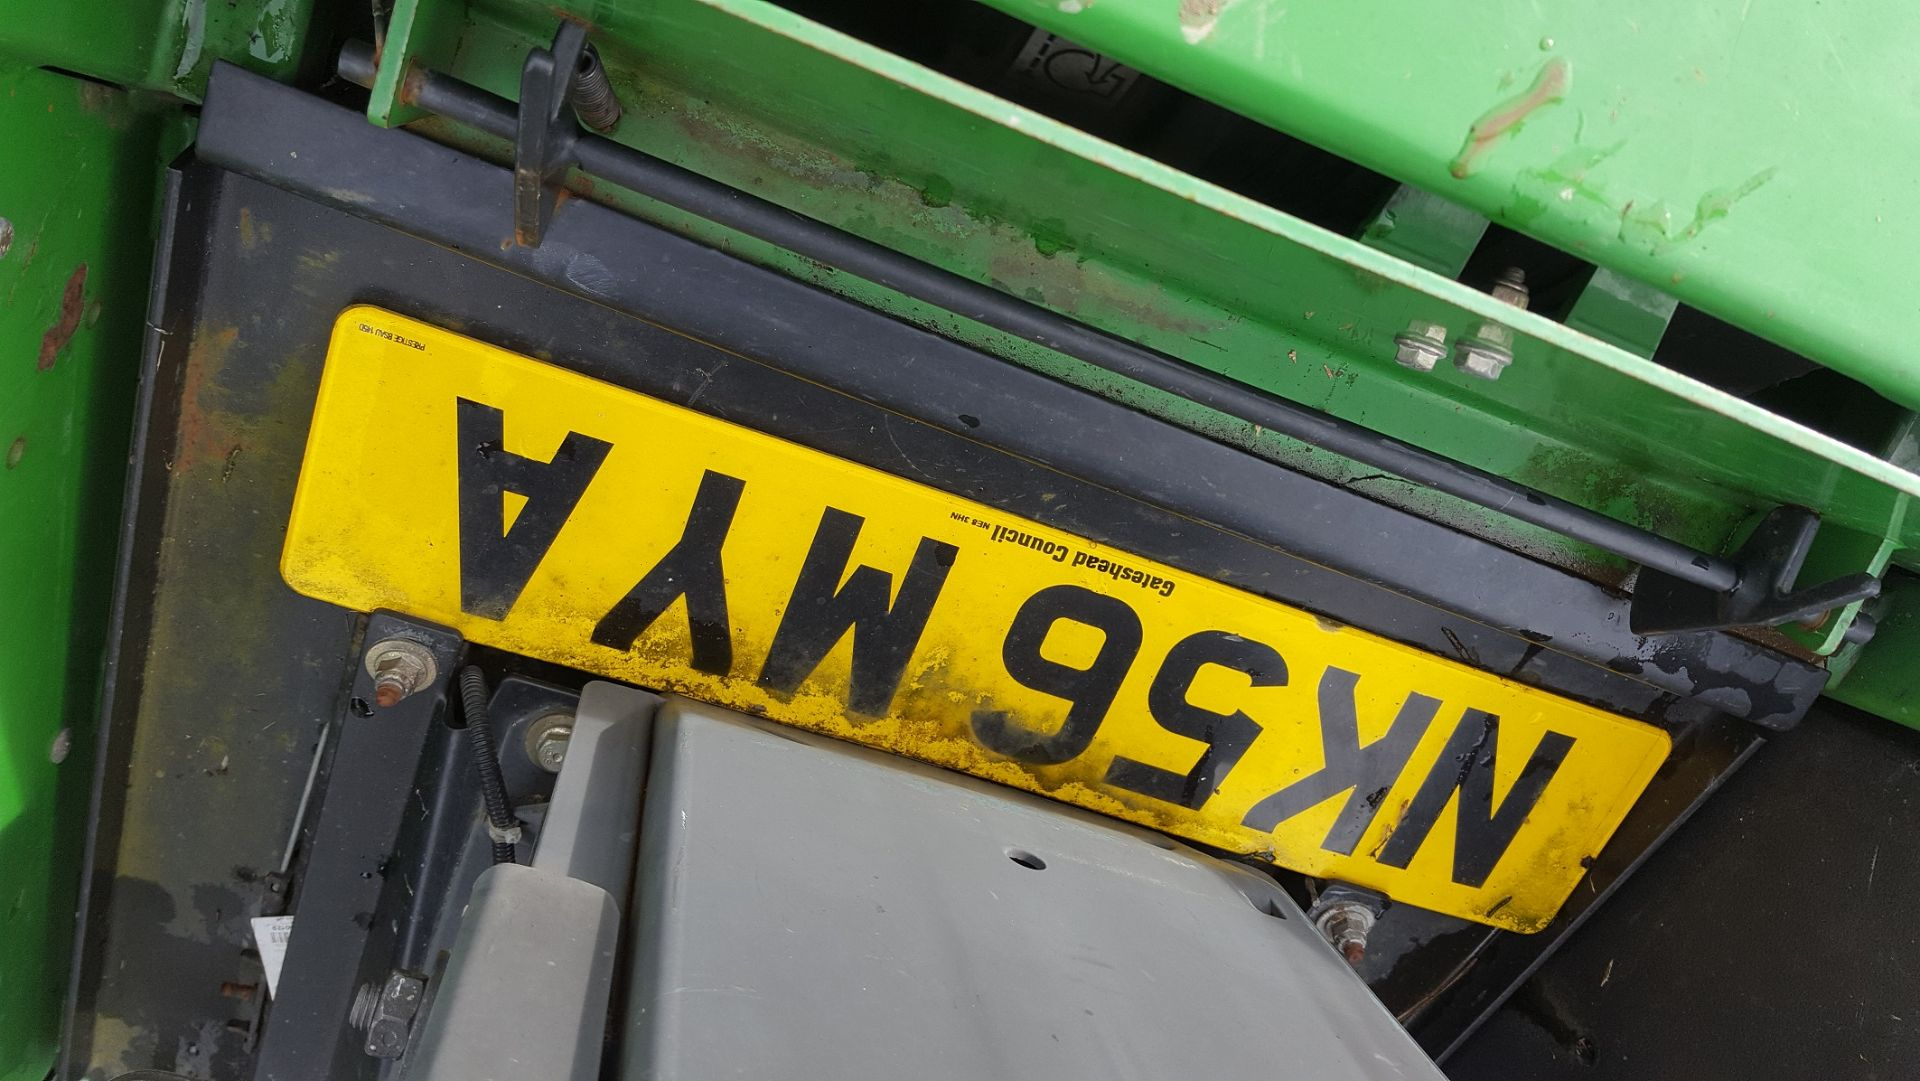 2006 JOHN DEERE 1545 RIDE ON LAWN MOWER, EX GATESHEAD COUNCIL *PLUS VAT* - Image 6 of 8